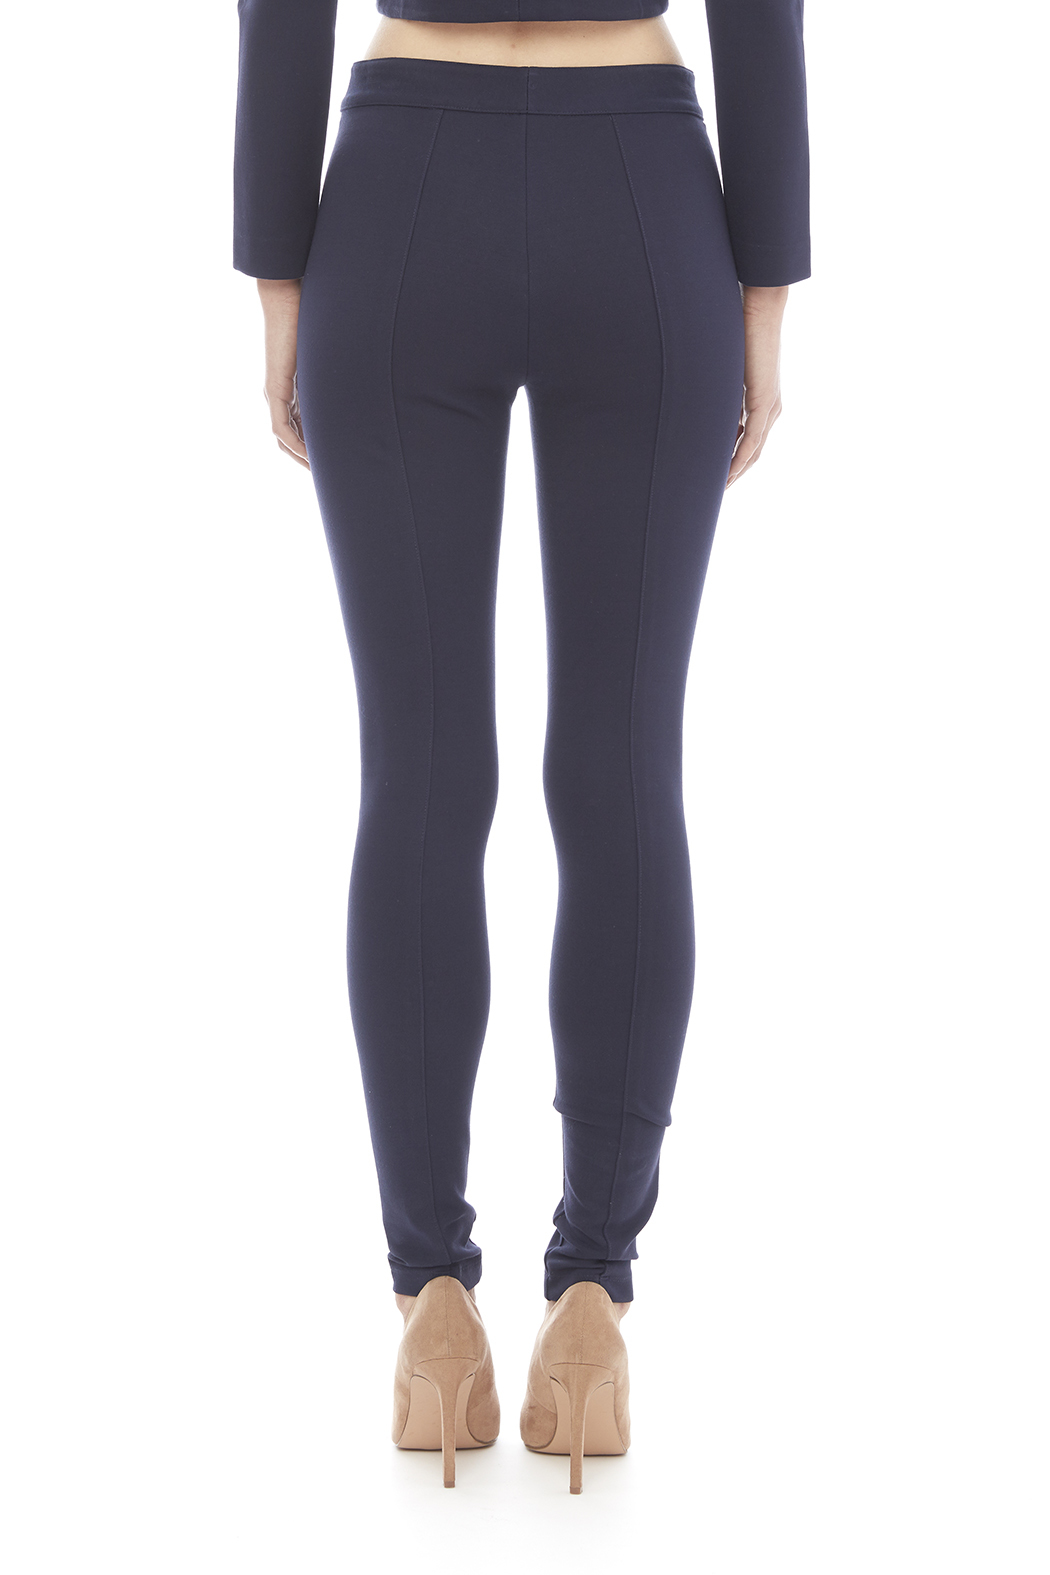 Blaque Label Kinit Navy Pants - Back Cropped Image